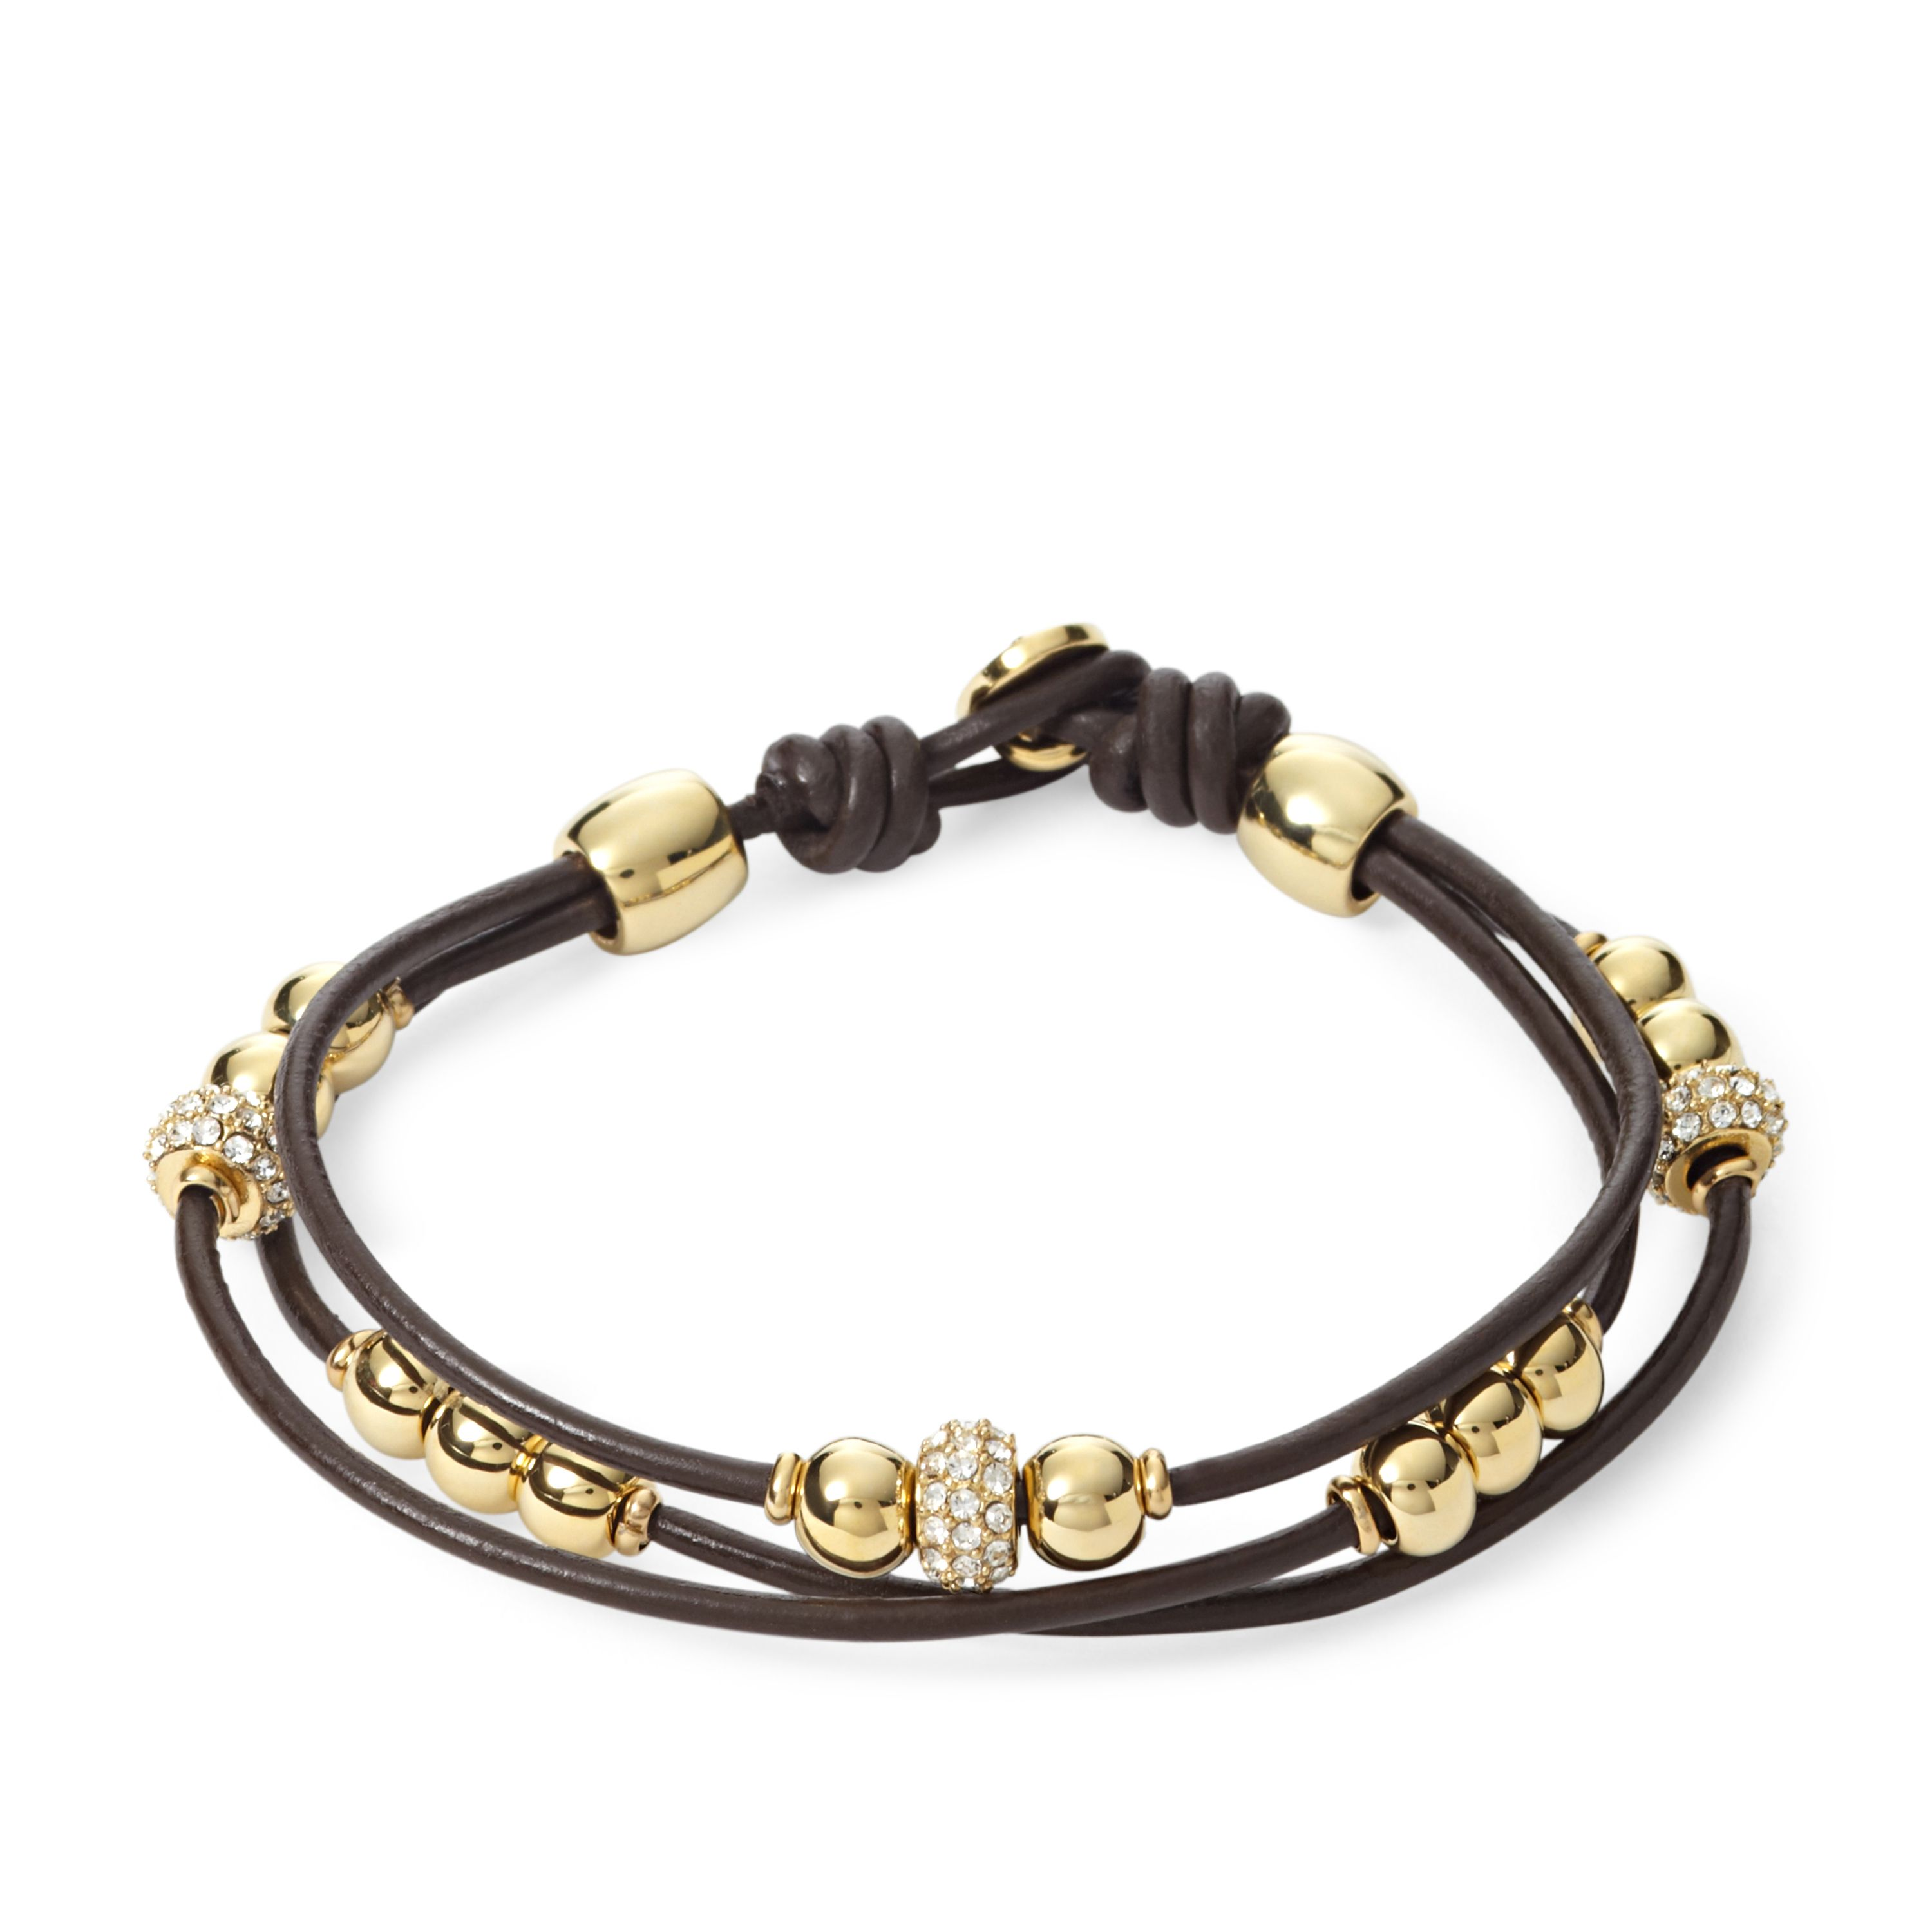 JA6069710 Ladies brown fashion bracelet